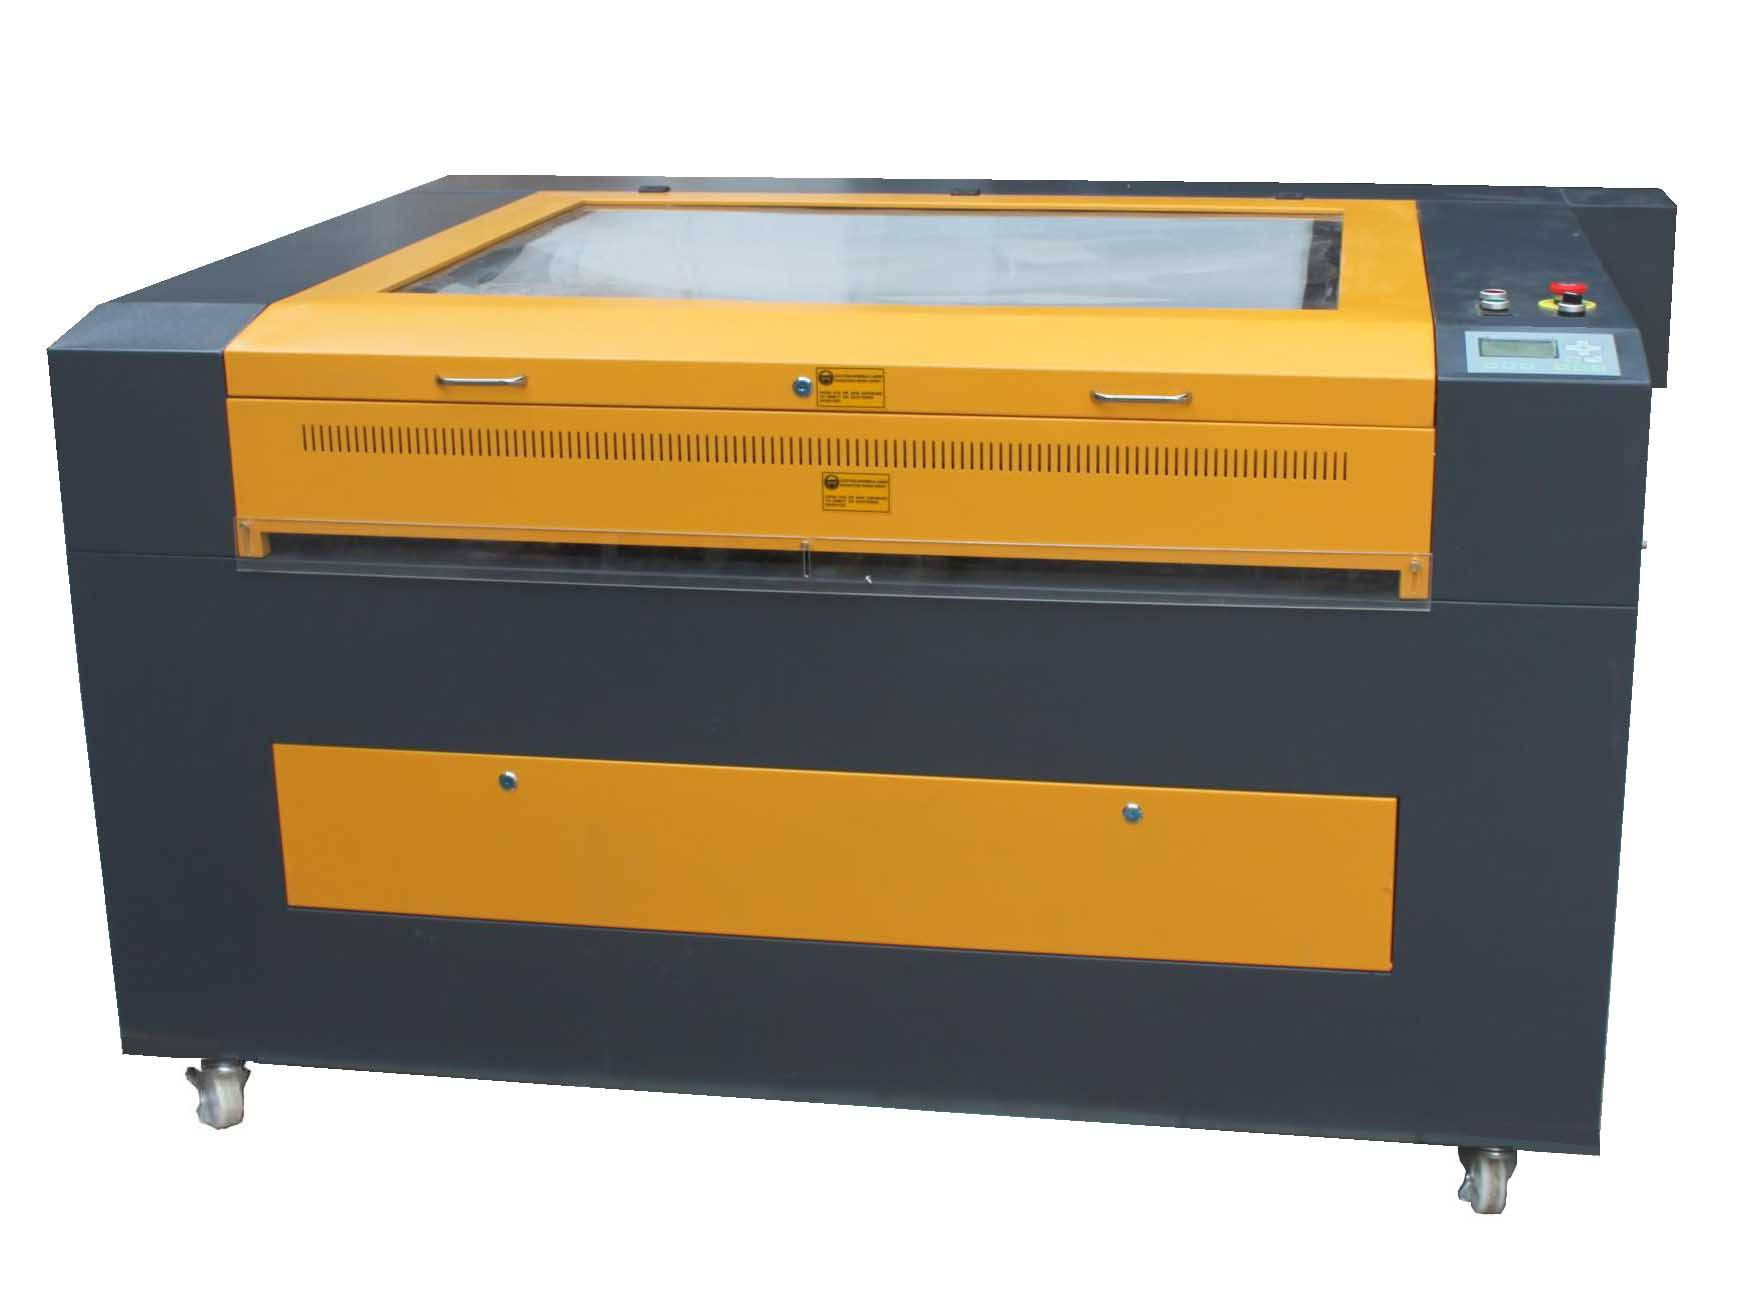 supply high power laser cutting machine 180w long life